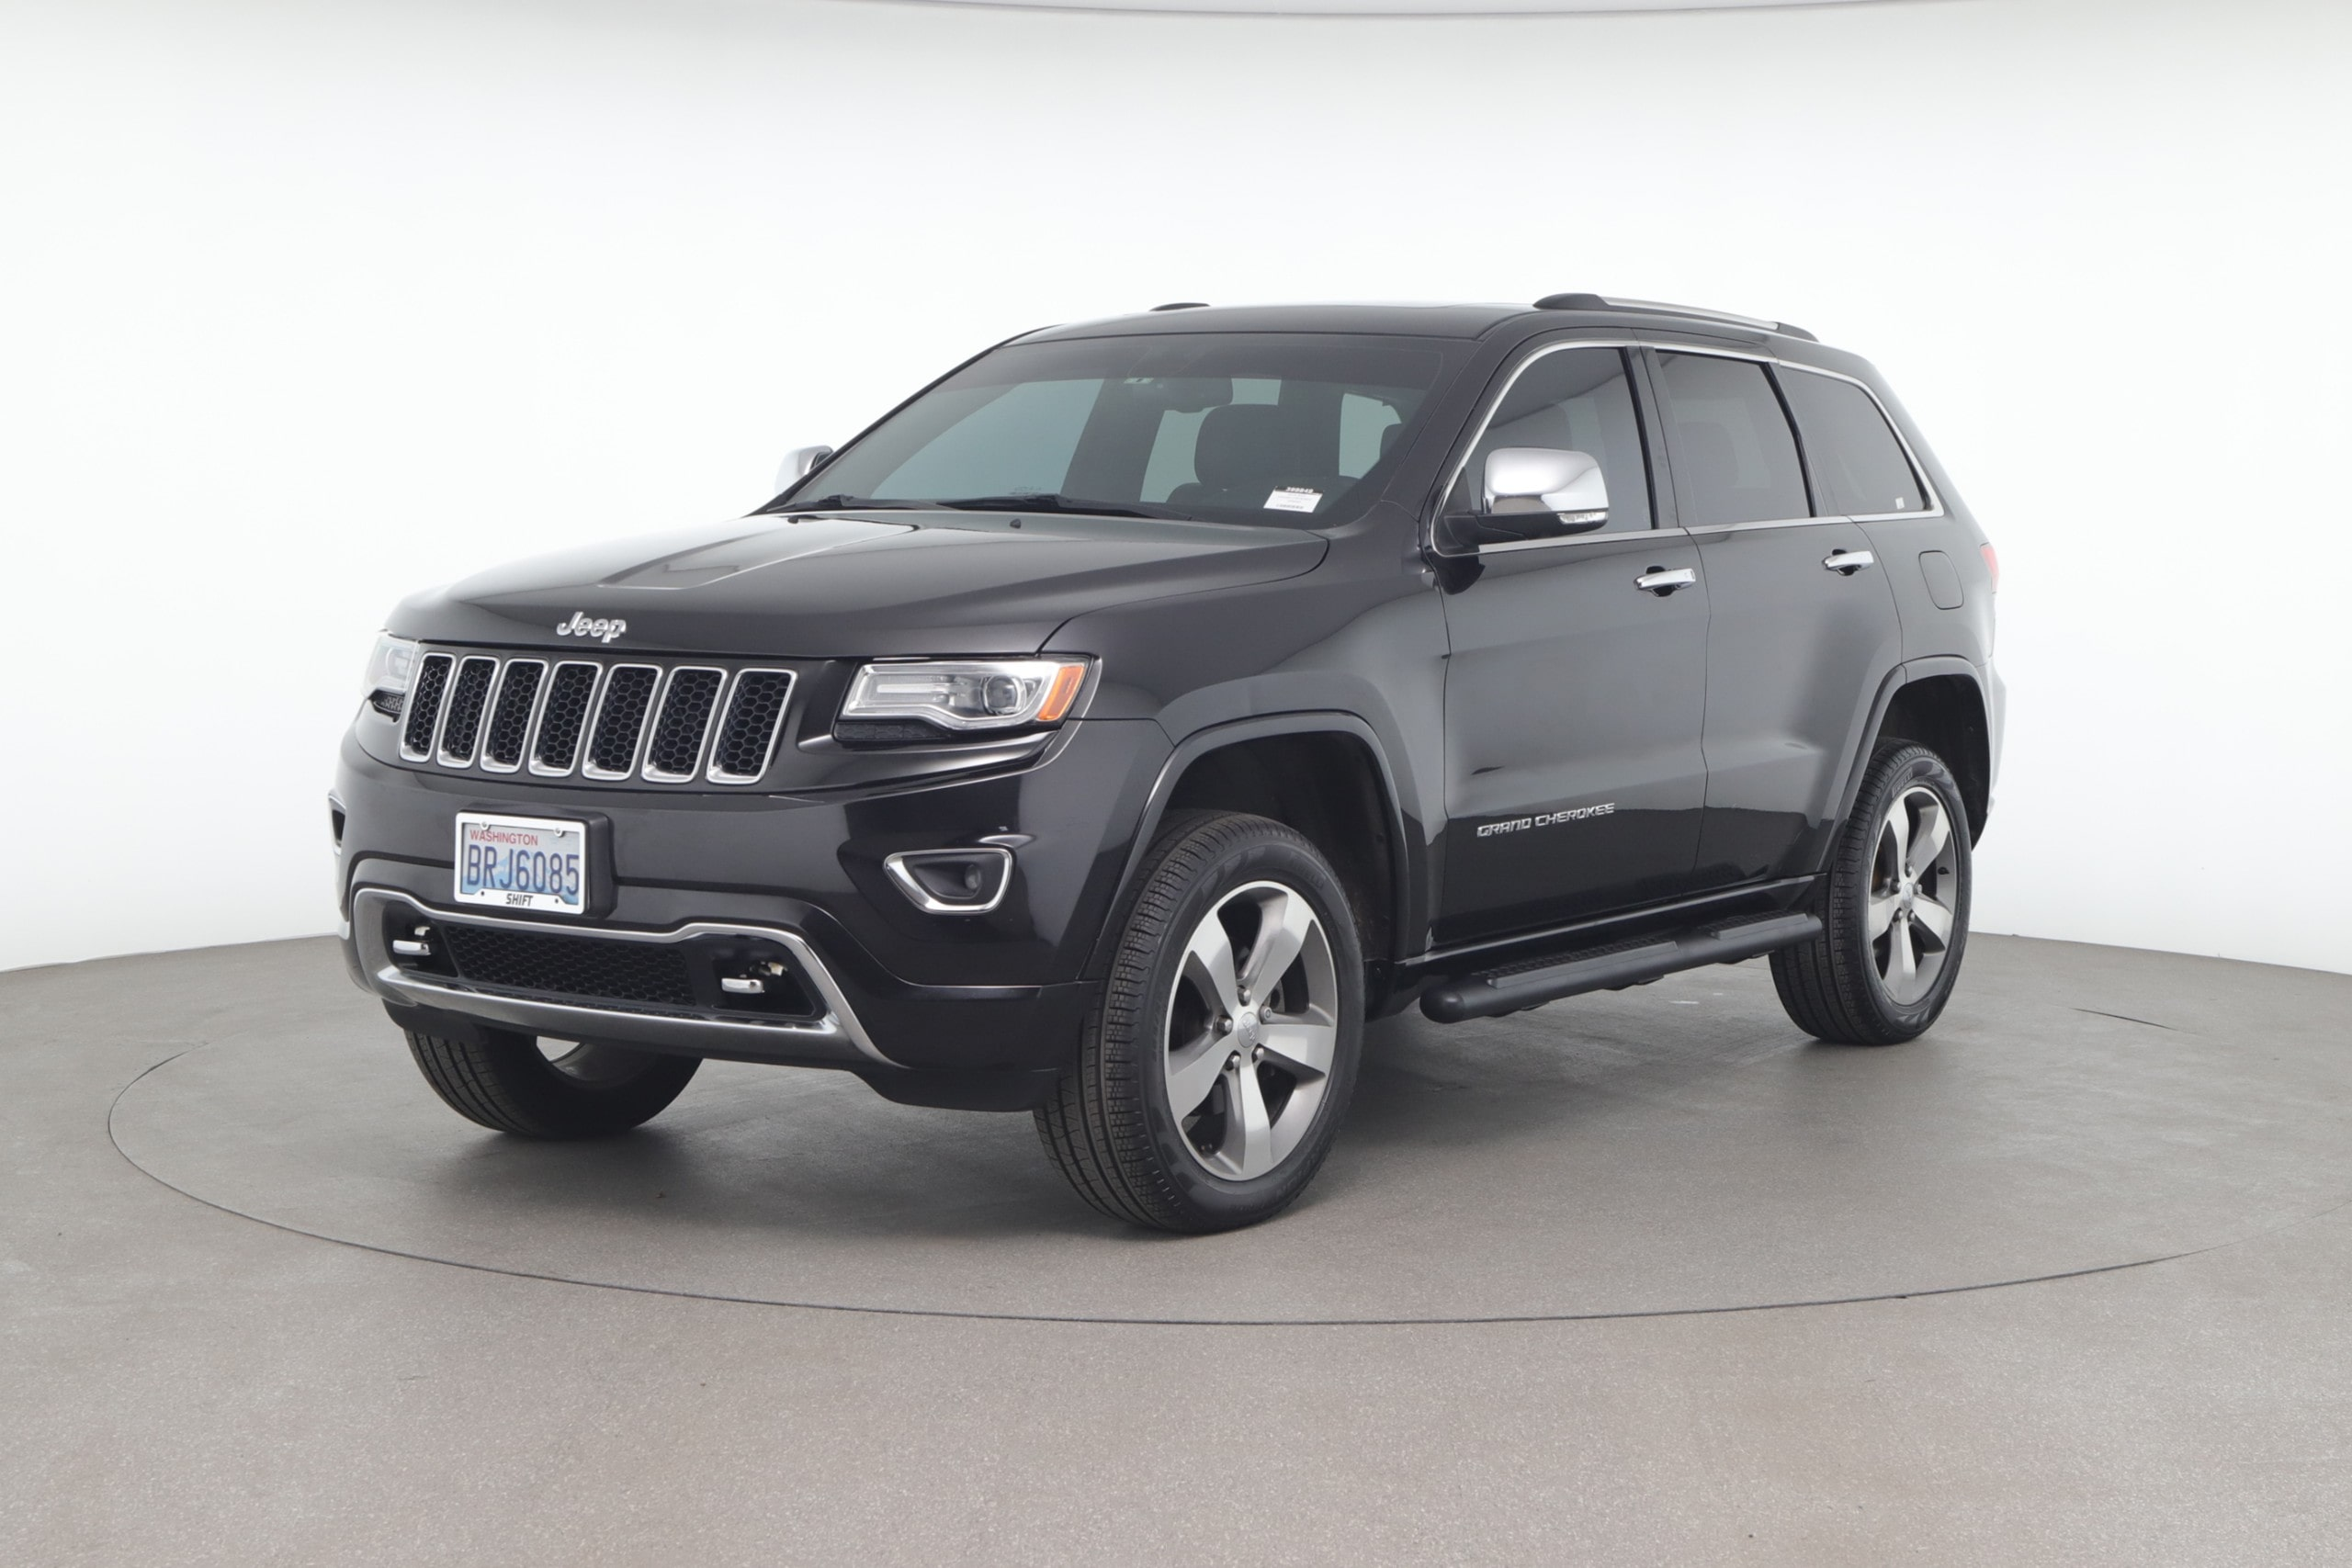 2014 Jeep Grand Cherokee Overland (from $23,950)